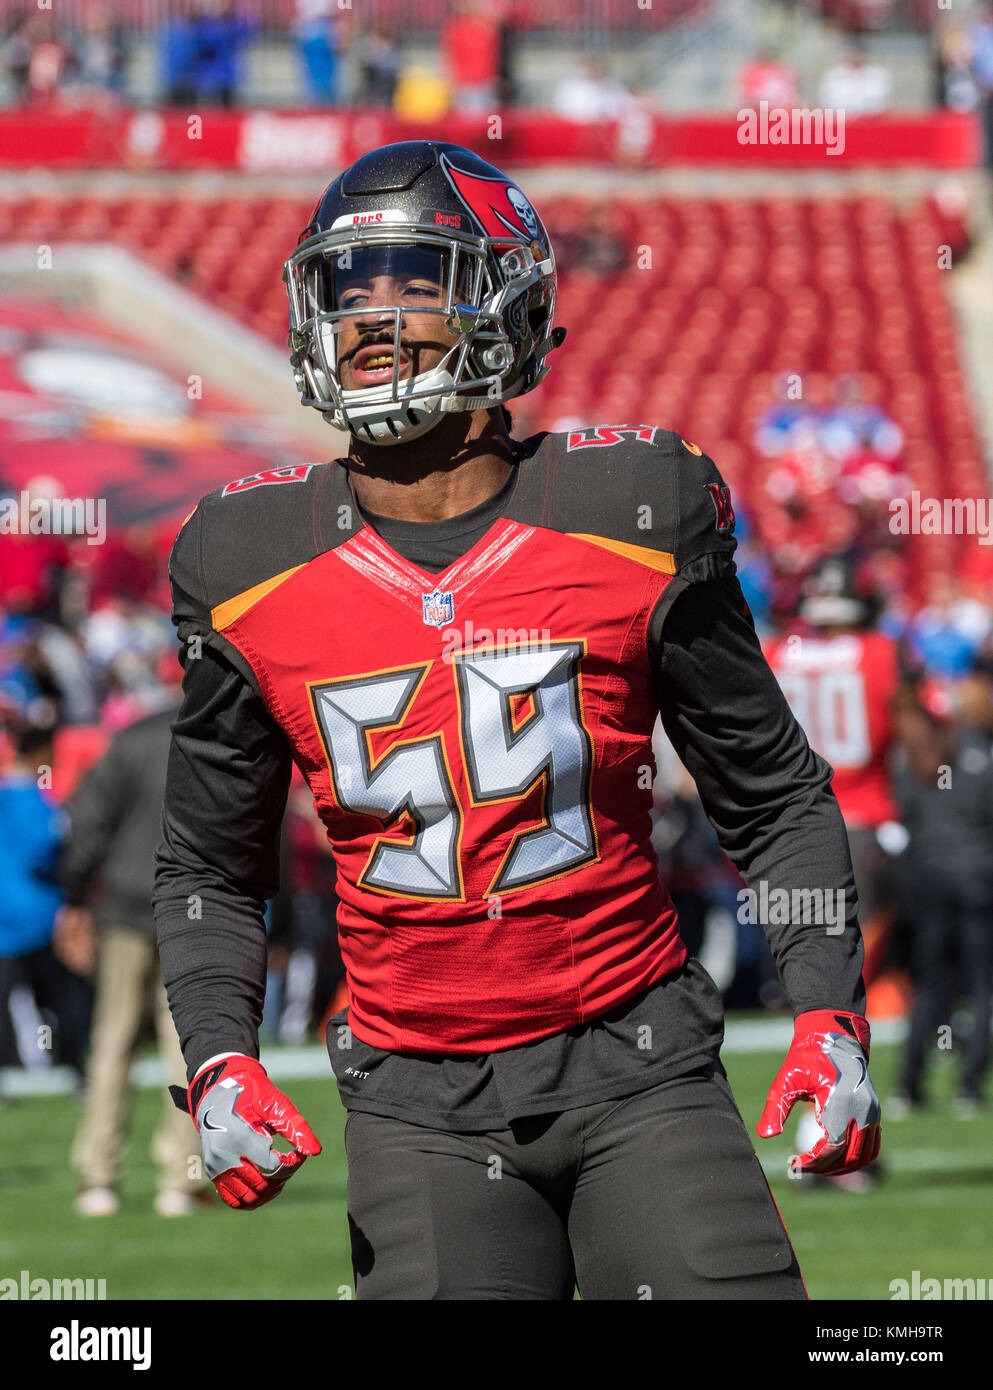 outlet store f6ad2 5c8a3 December 10, 2017 - Tampa Bay Buccaneers outside linebacker ...